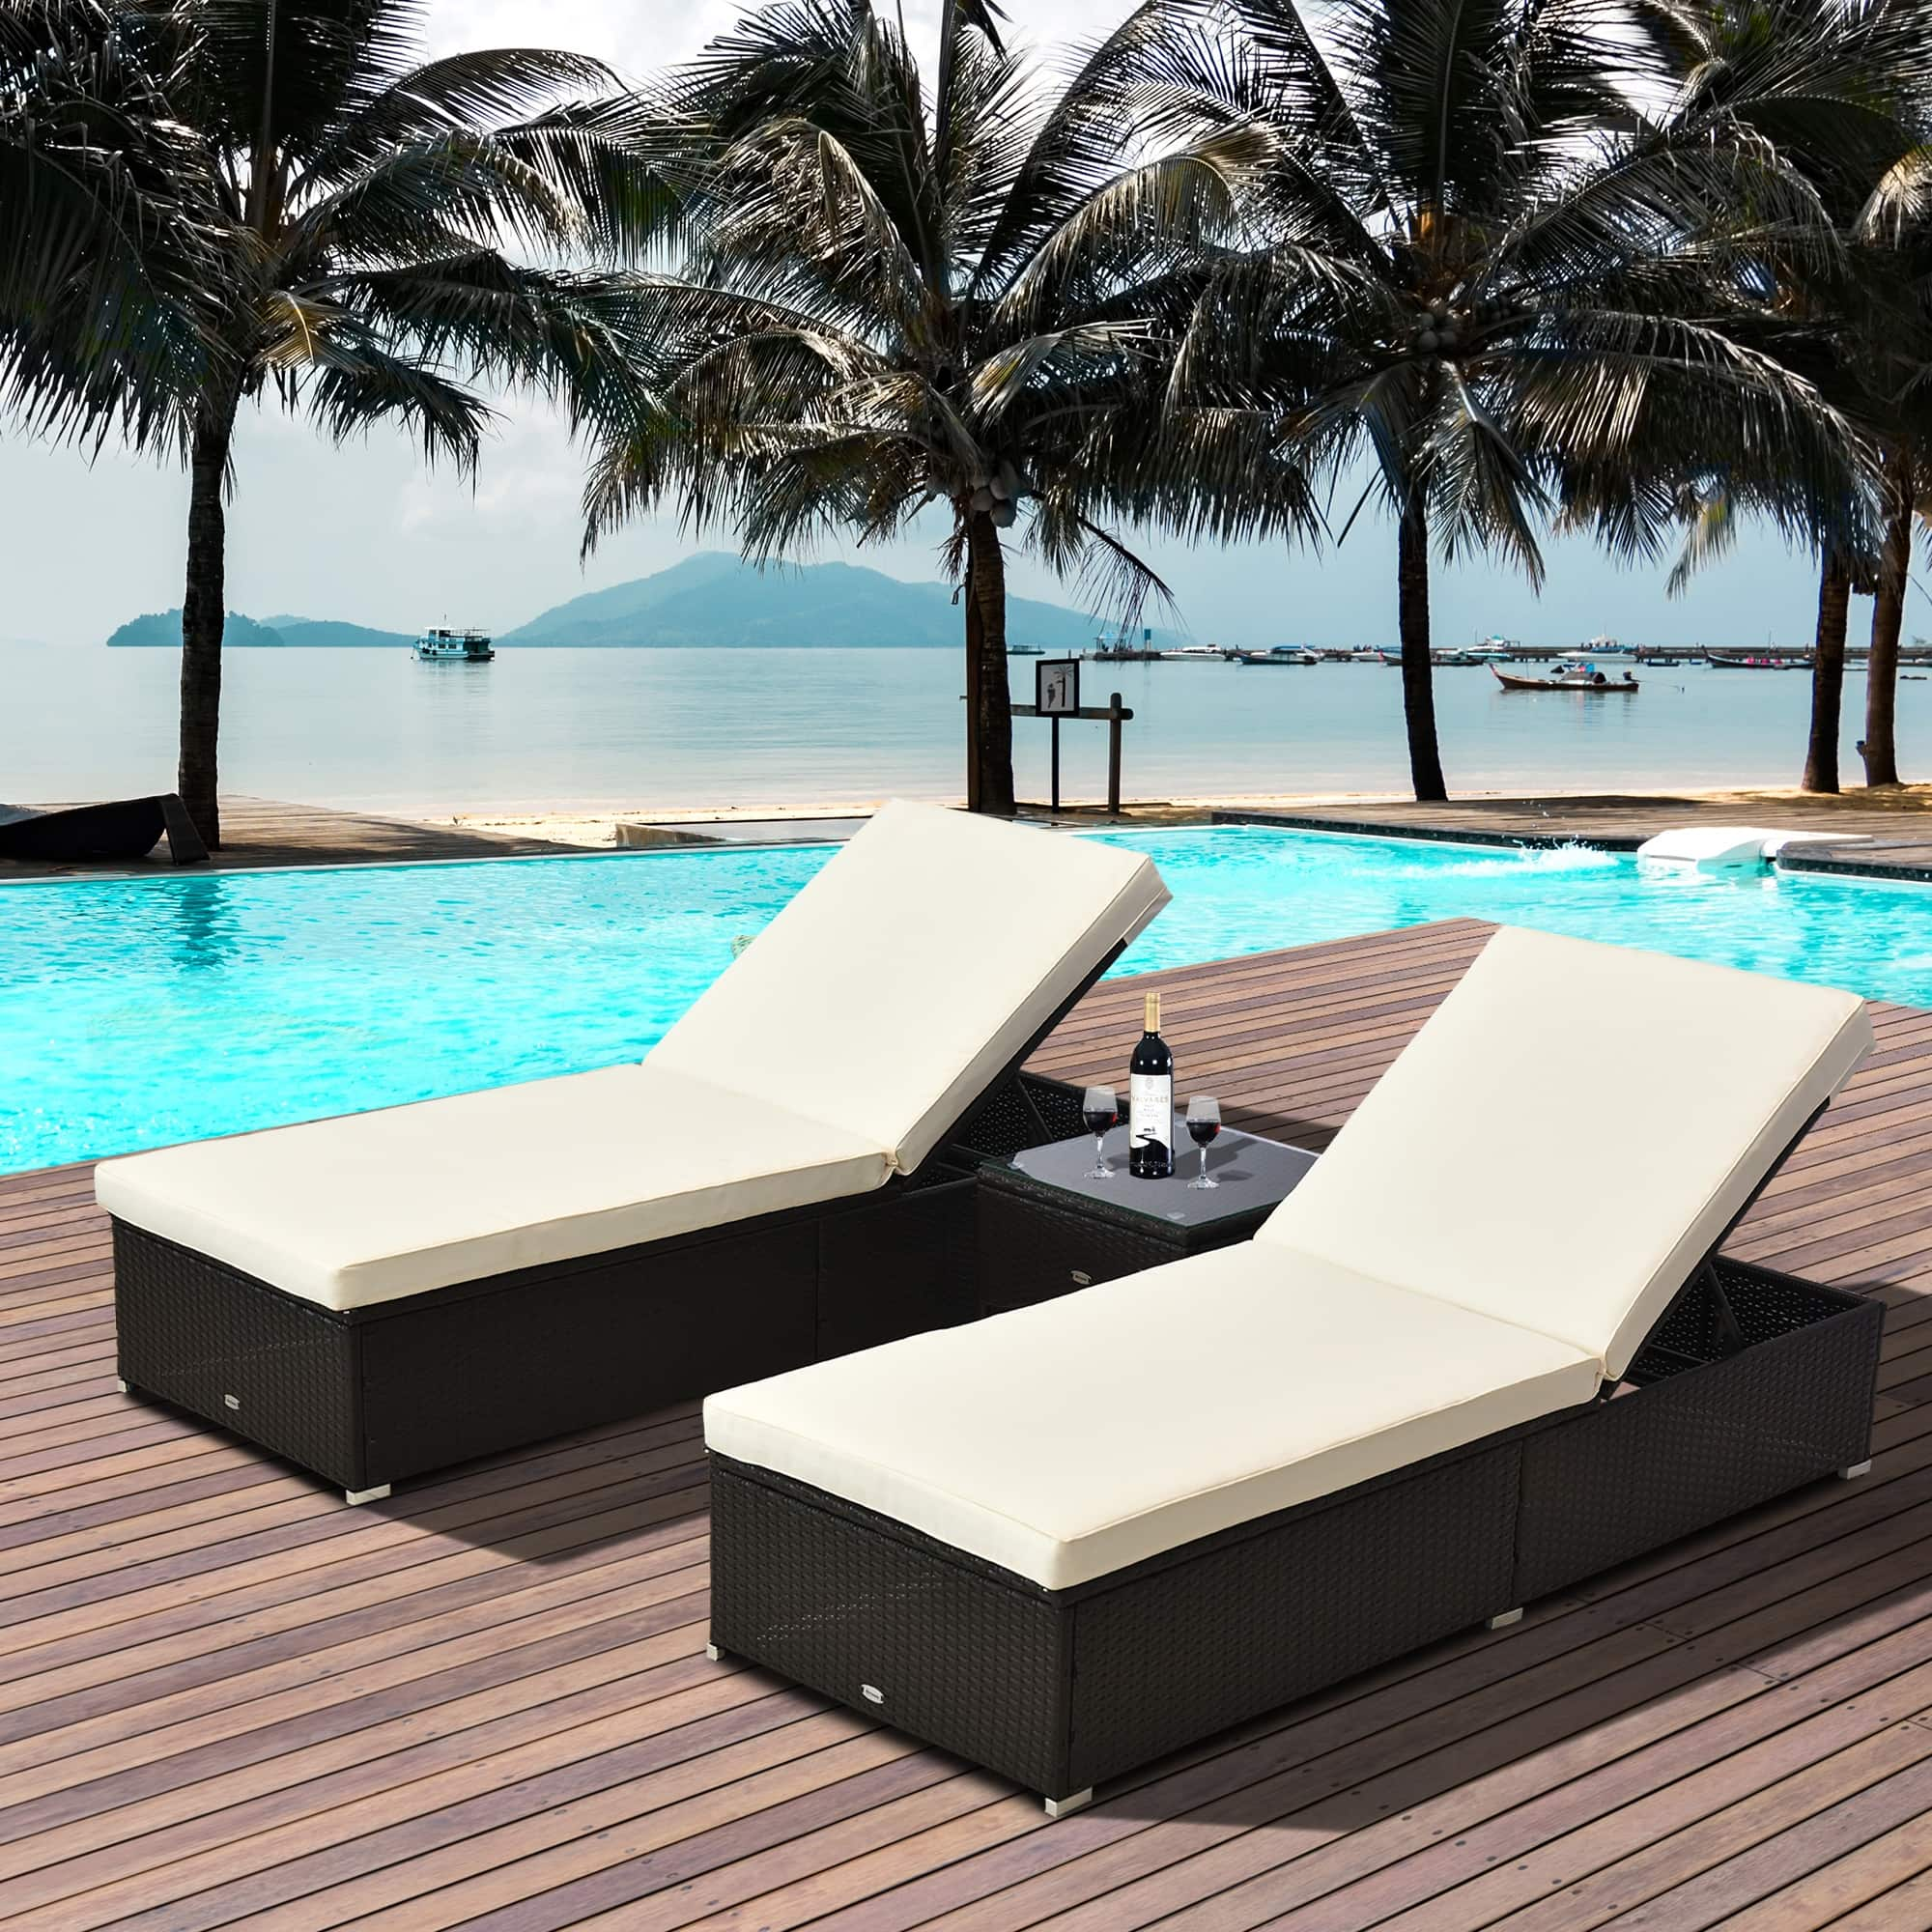 Outsunny Rattan 3 Piece Chaise Lounge Patio Set With Side Table Black On Sale Overstock 12529201